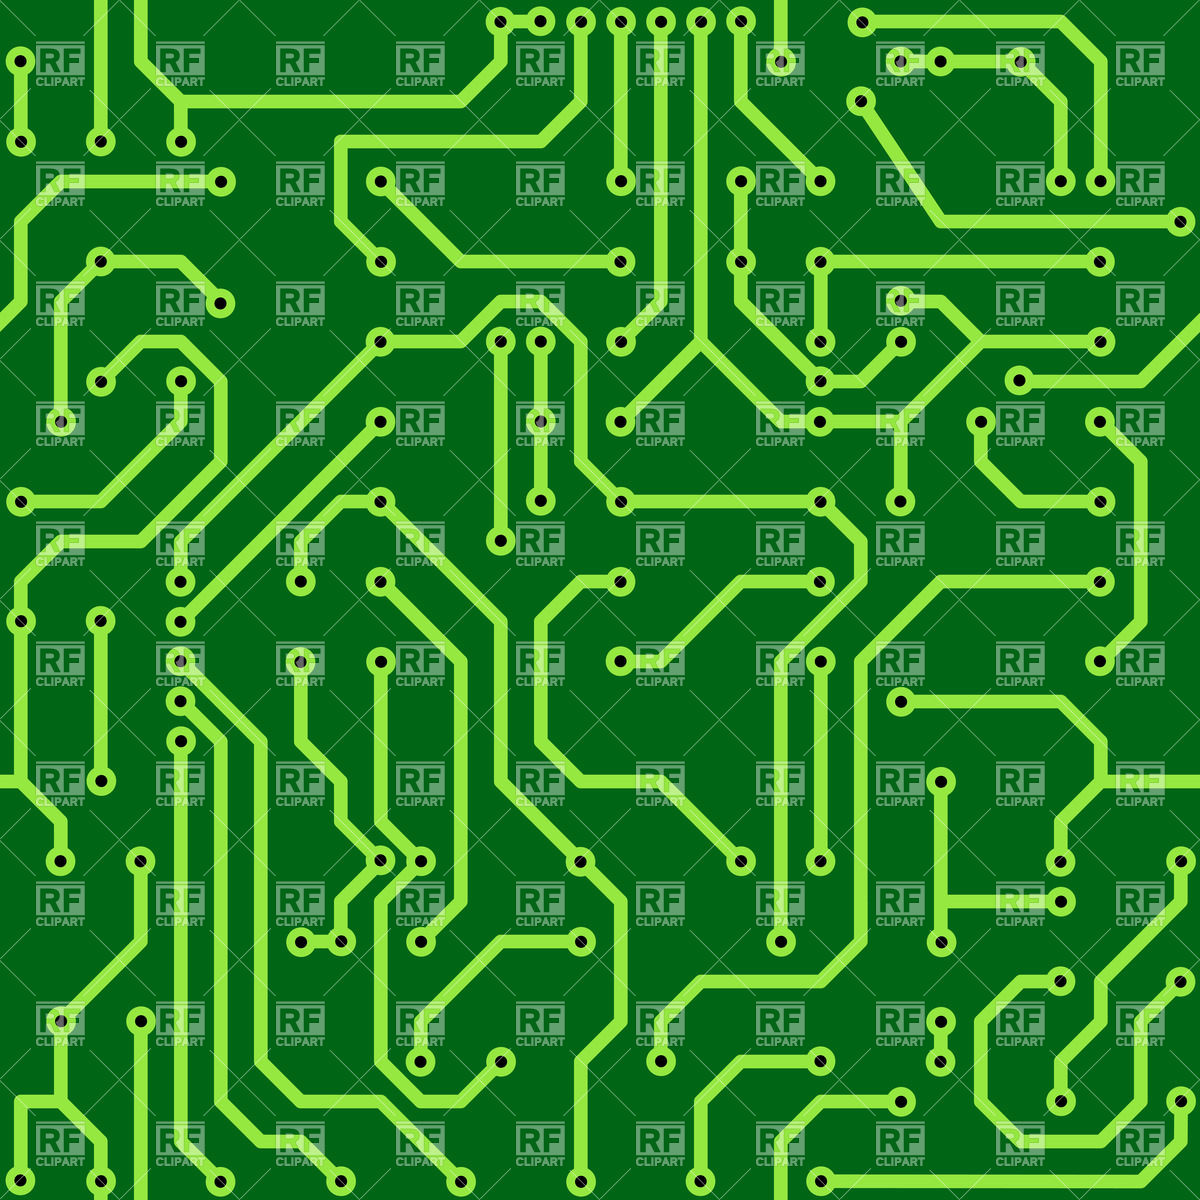 Circuit Board Clipart Clipground Cpu Royalty Free Stock Photo Image 24475895 Background 33437 Download Vector